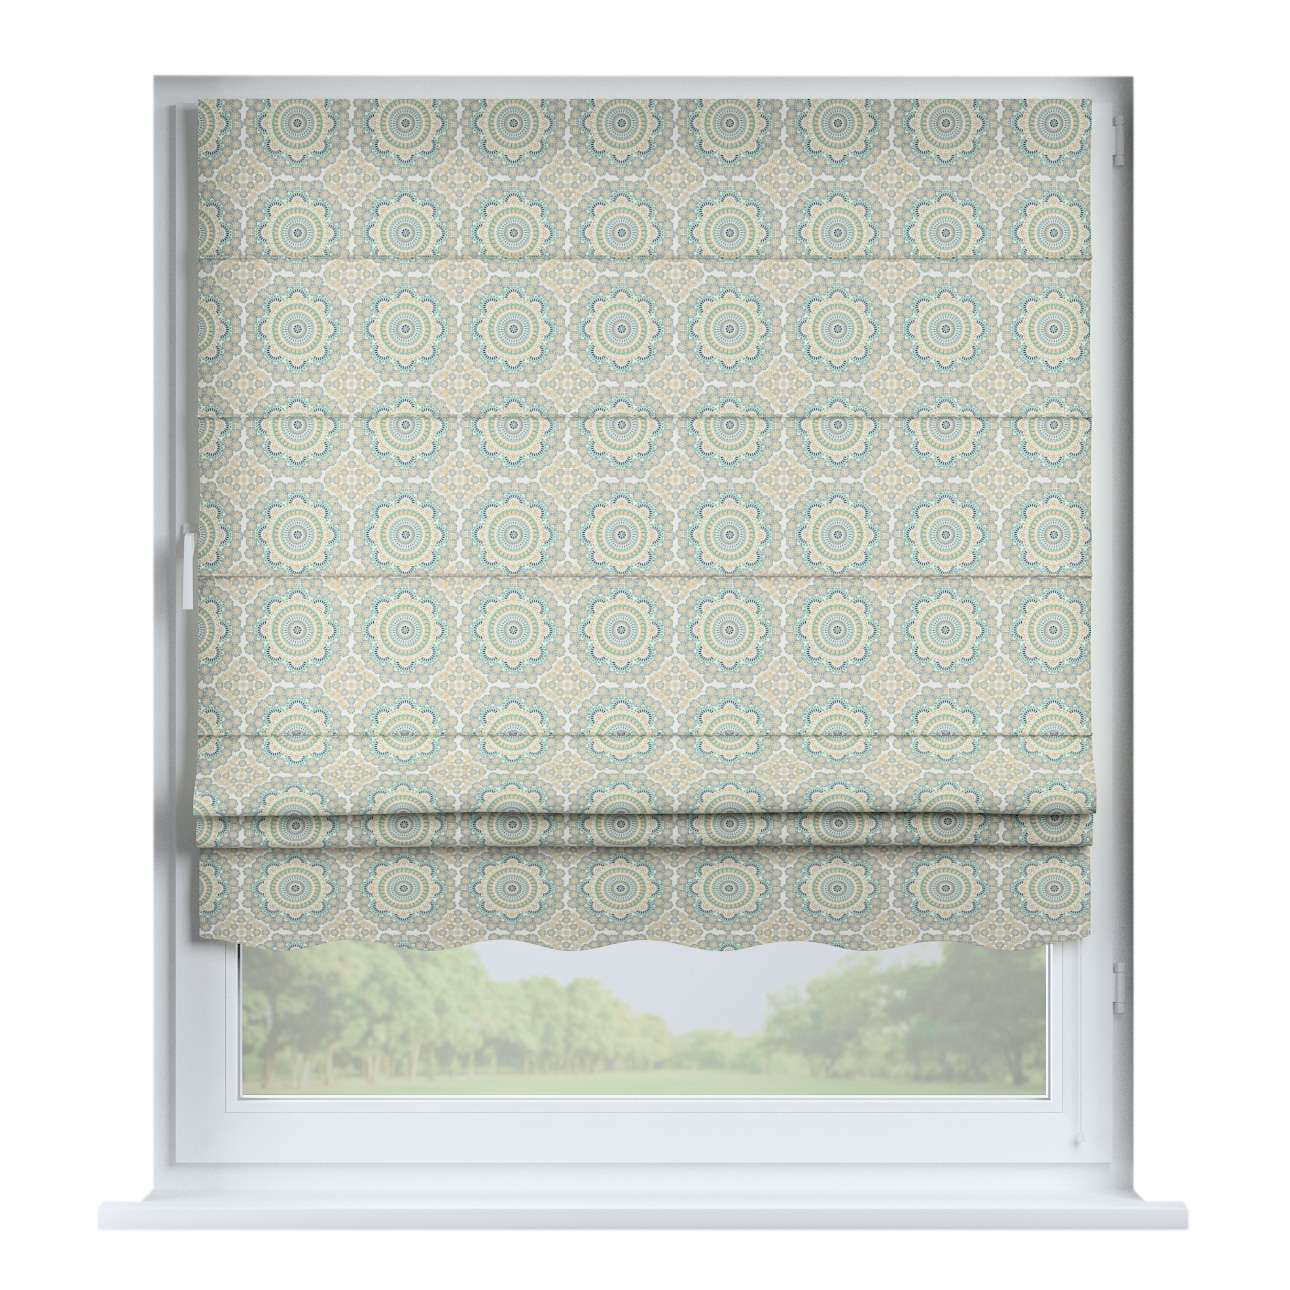 Florence roman blind  80 x 170 cm (31.5 x 67 inch) in collection Comic Book & Geo Prints, fabric: 137-84